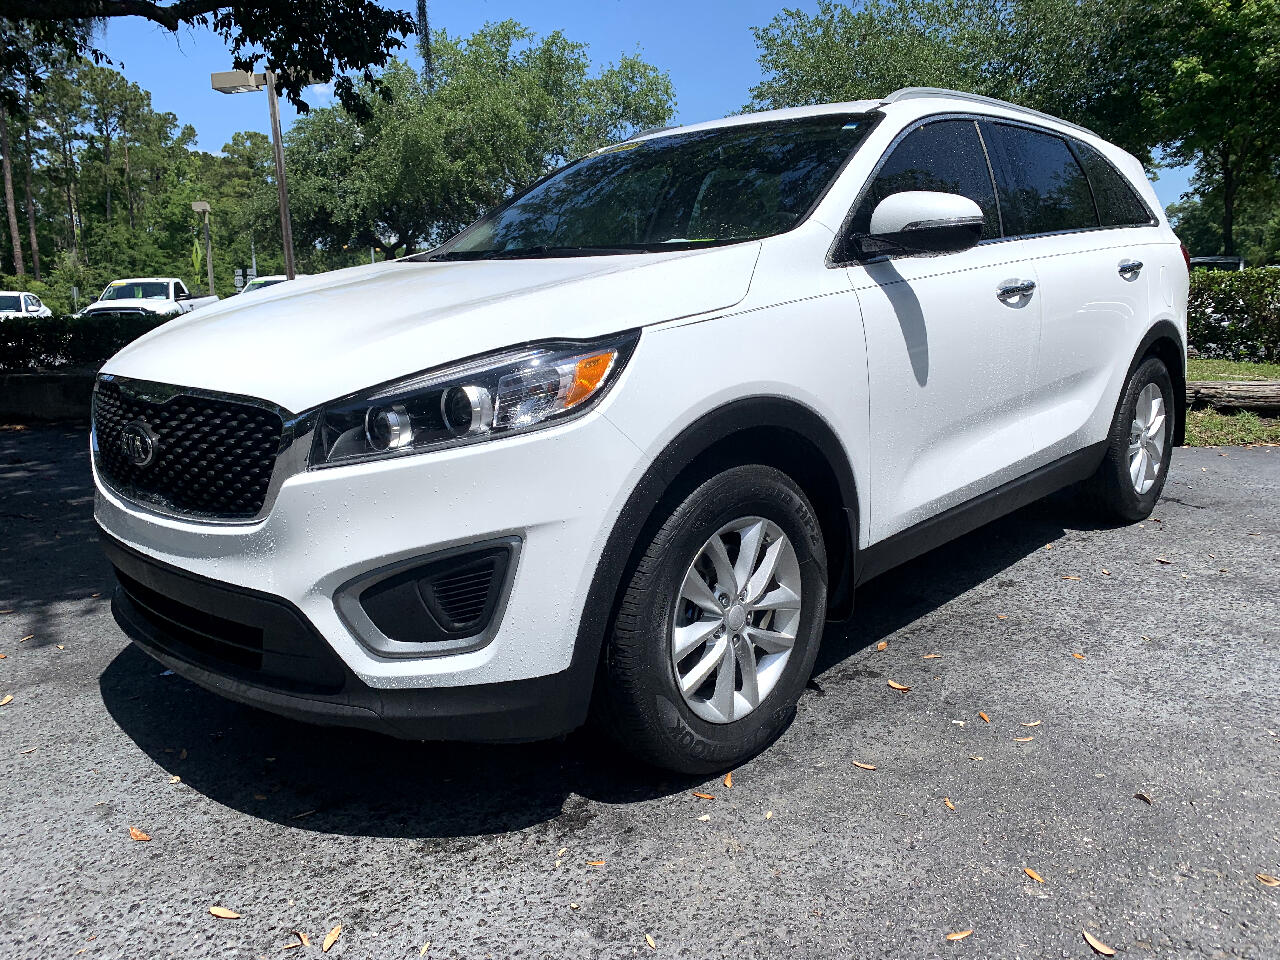 2016 Kia Sorento FWD 4dr 3.3L With a 3rd Row Seat